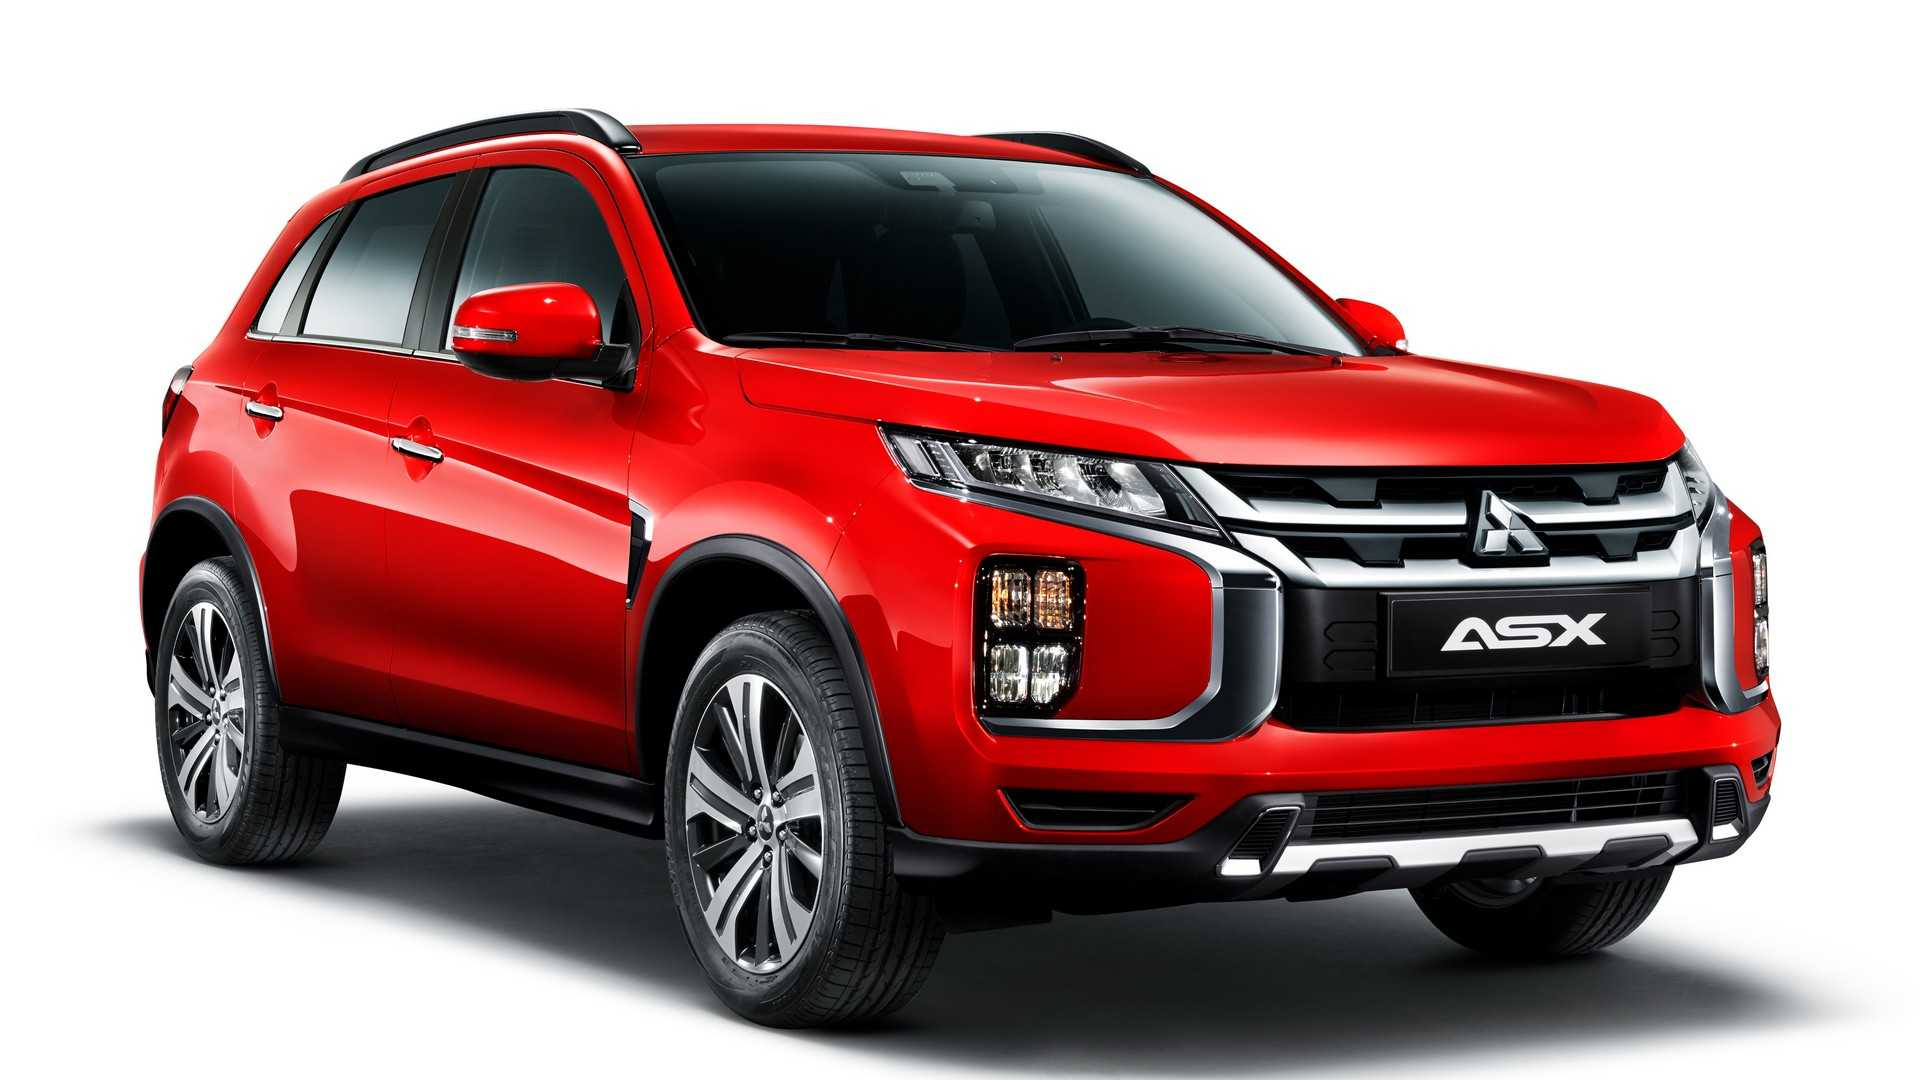 33 A Uusi Mitsubishi Asx 2020 Speed Test